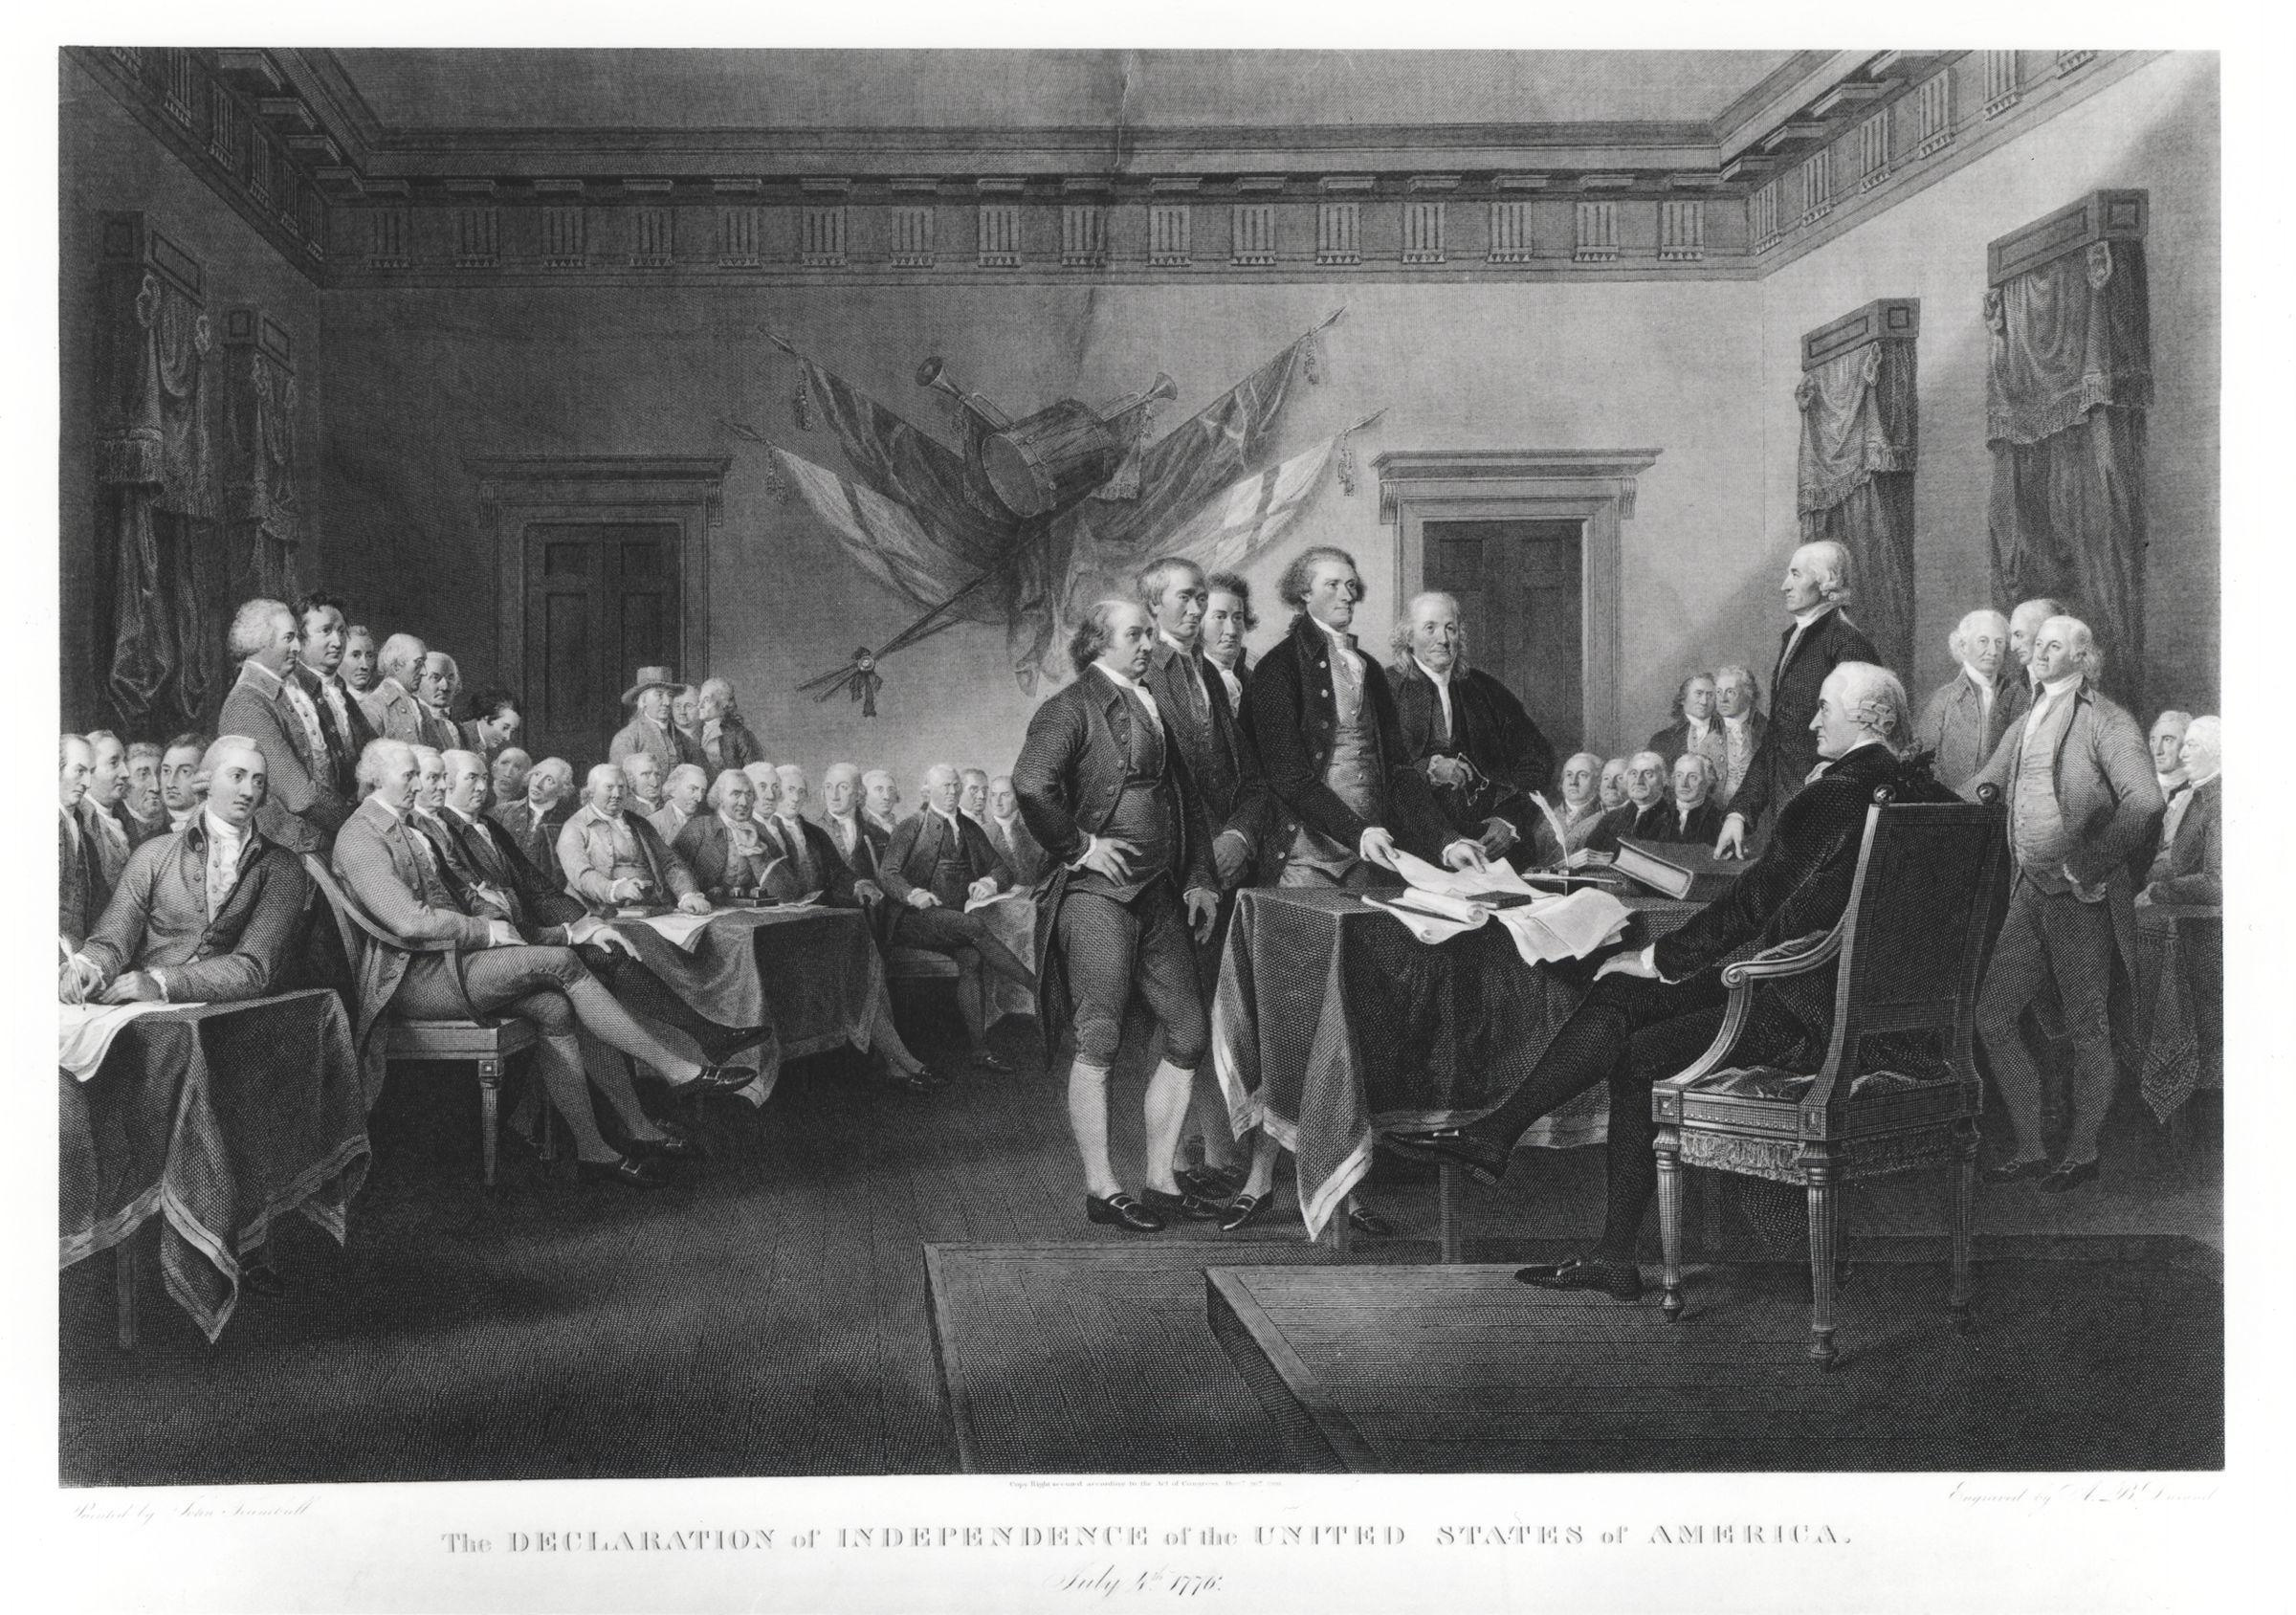 the declaration of independence of the united The declaration of independence is one of the most important documents in the history of the united states it was an official act taken by all 13 american colonies in declaring independence from british rule.